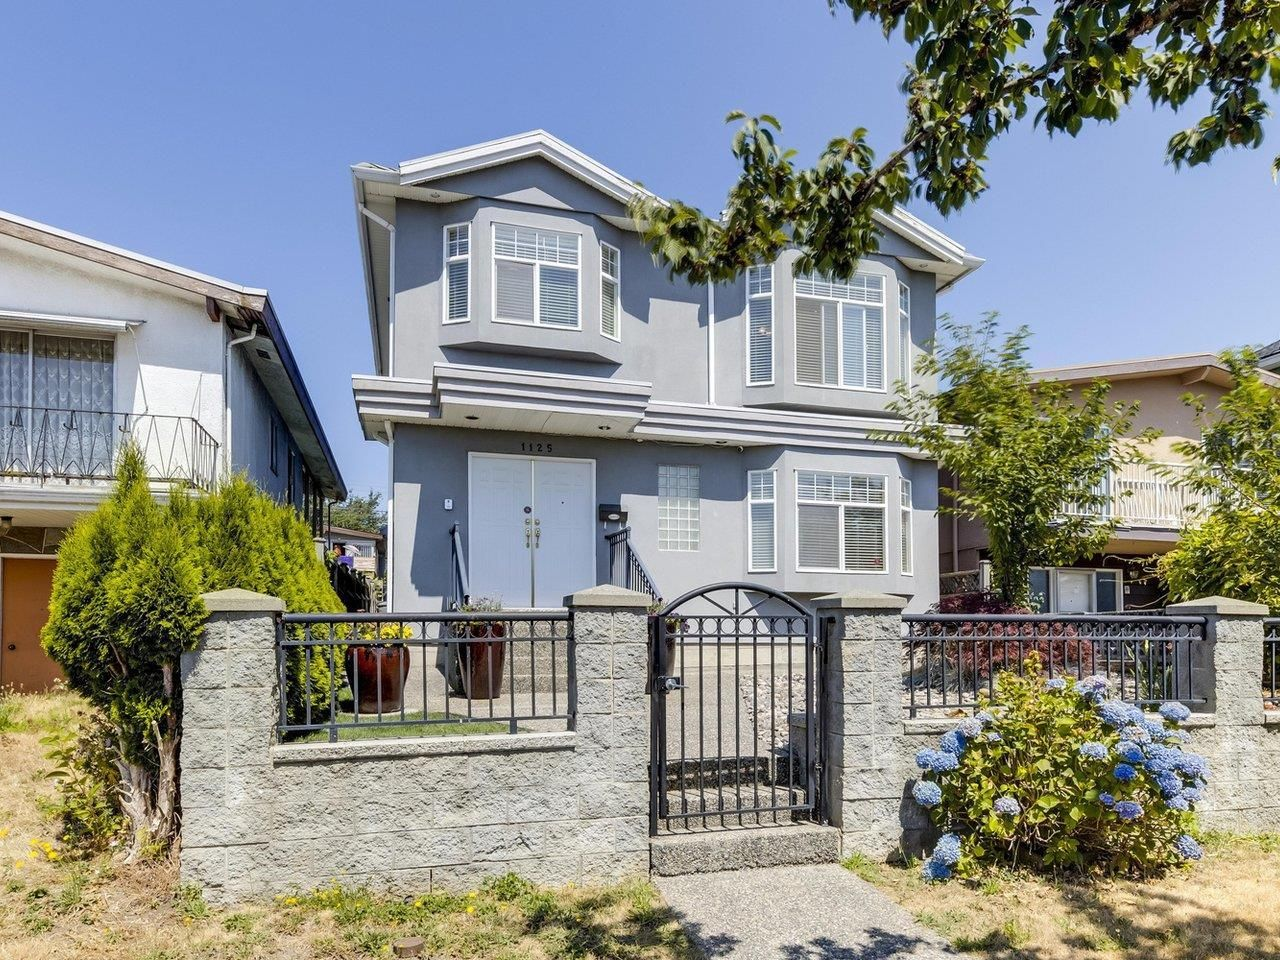 Main Photo: 1125 E 61ST Avenue in Vancouver: South Vancouver House for sale (Vancouver East)  : MLS®# R2602982